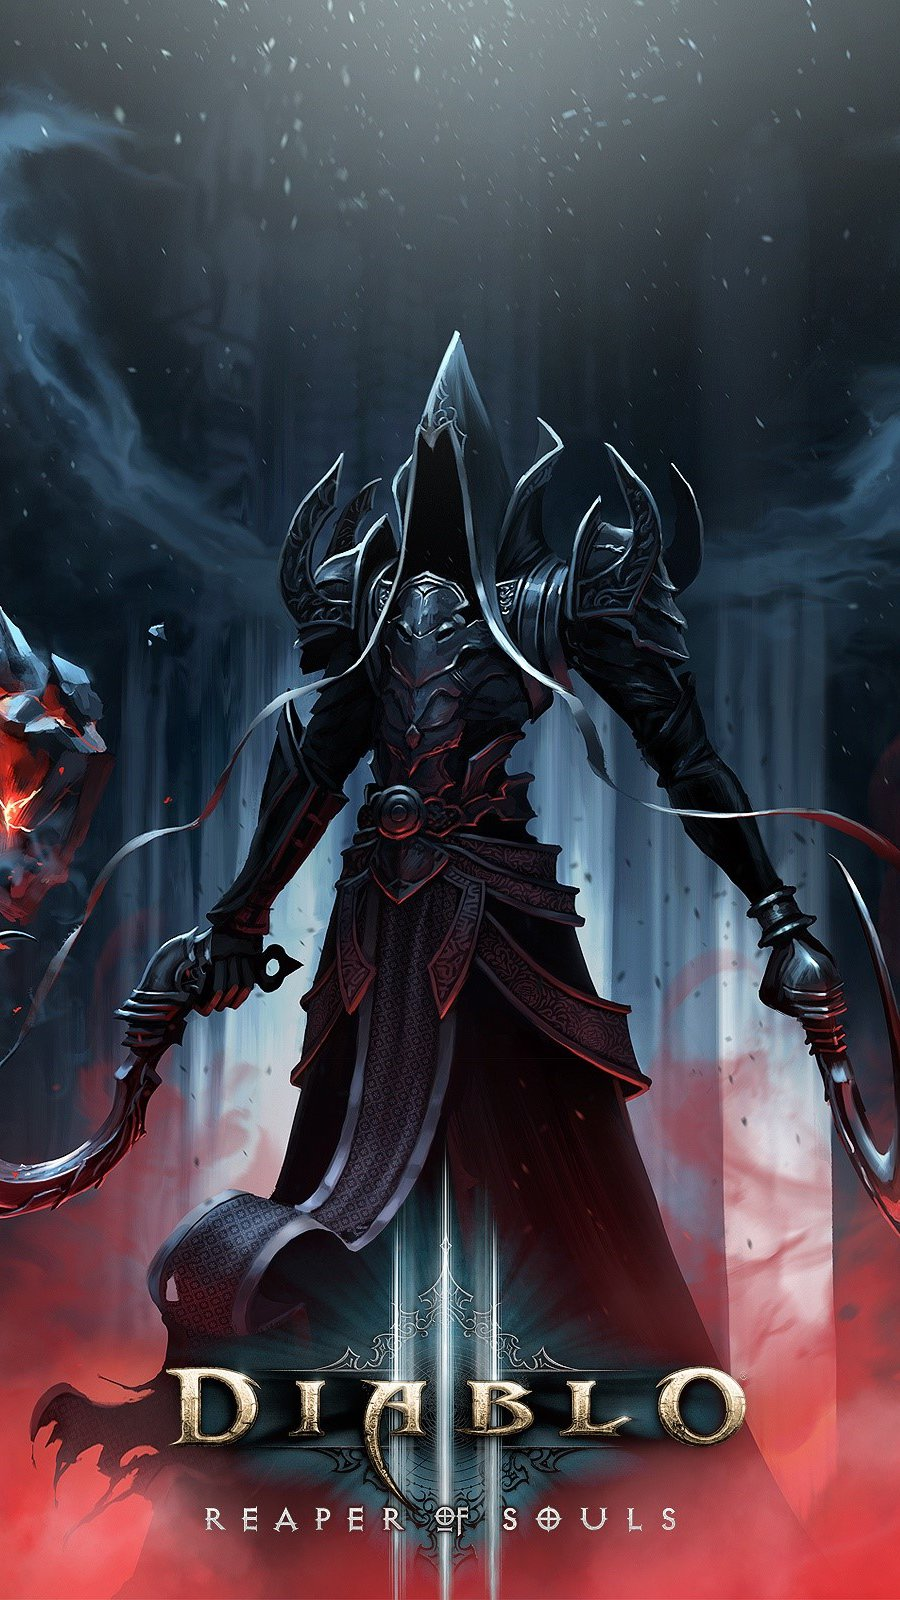 Wallpaper Diablo 3 Reaper of souls Vertical